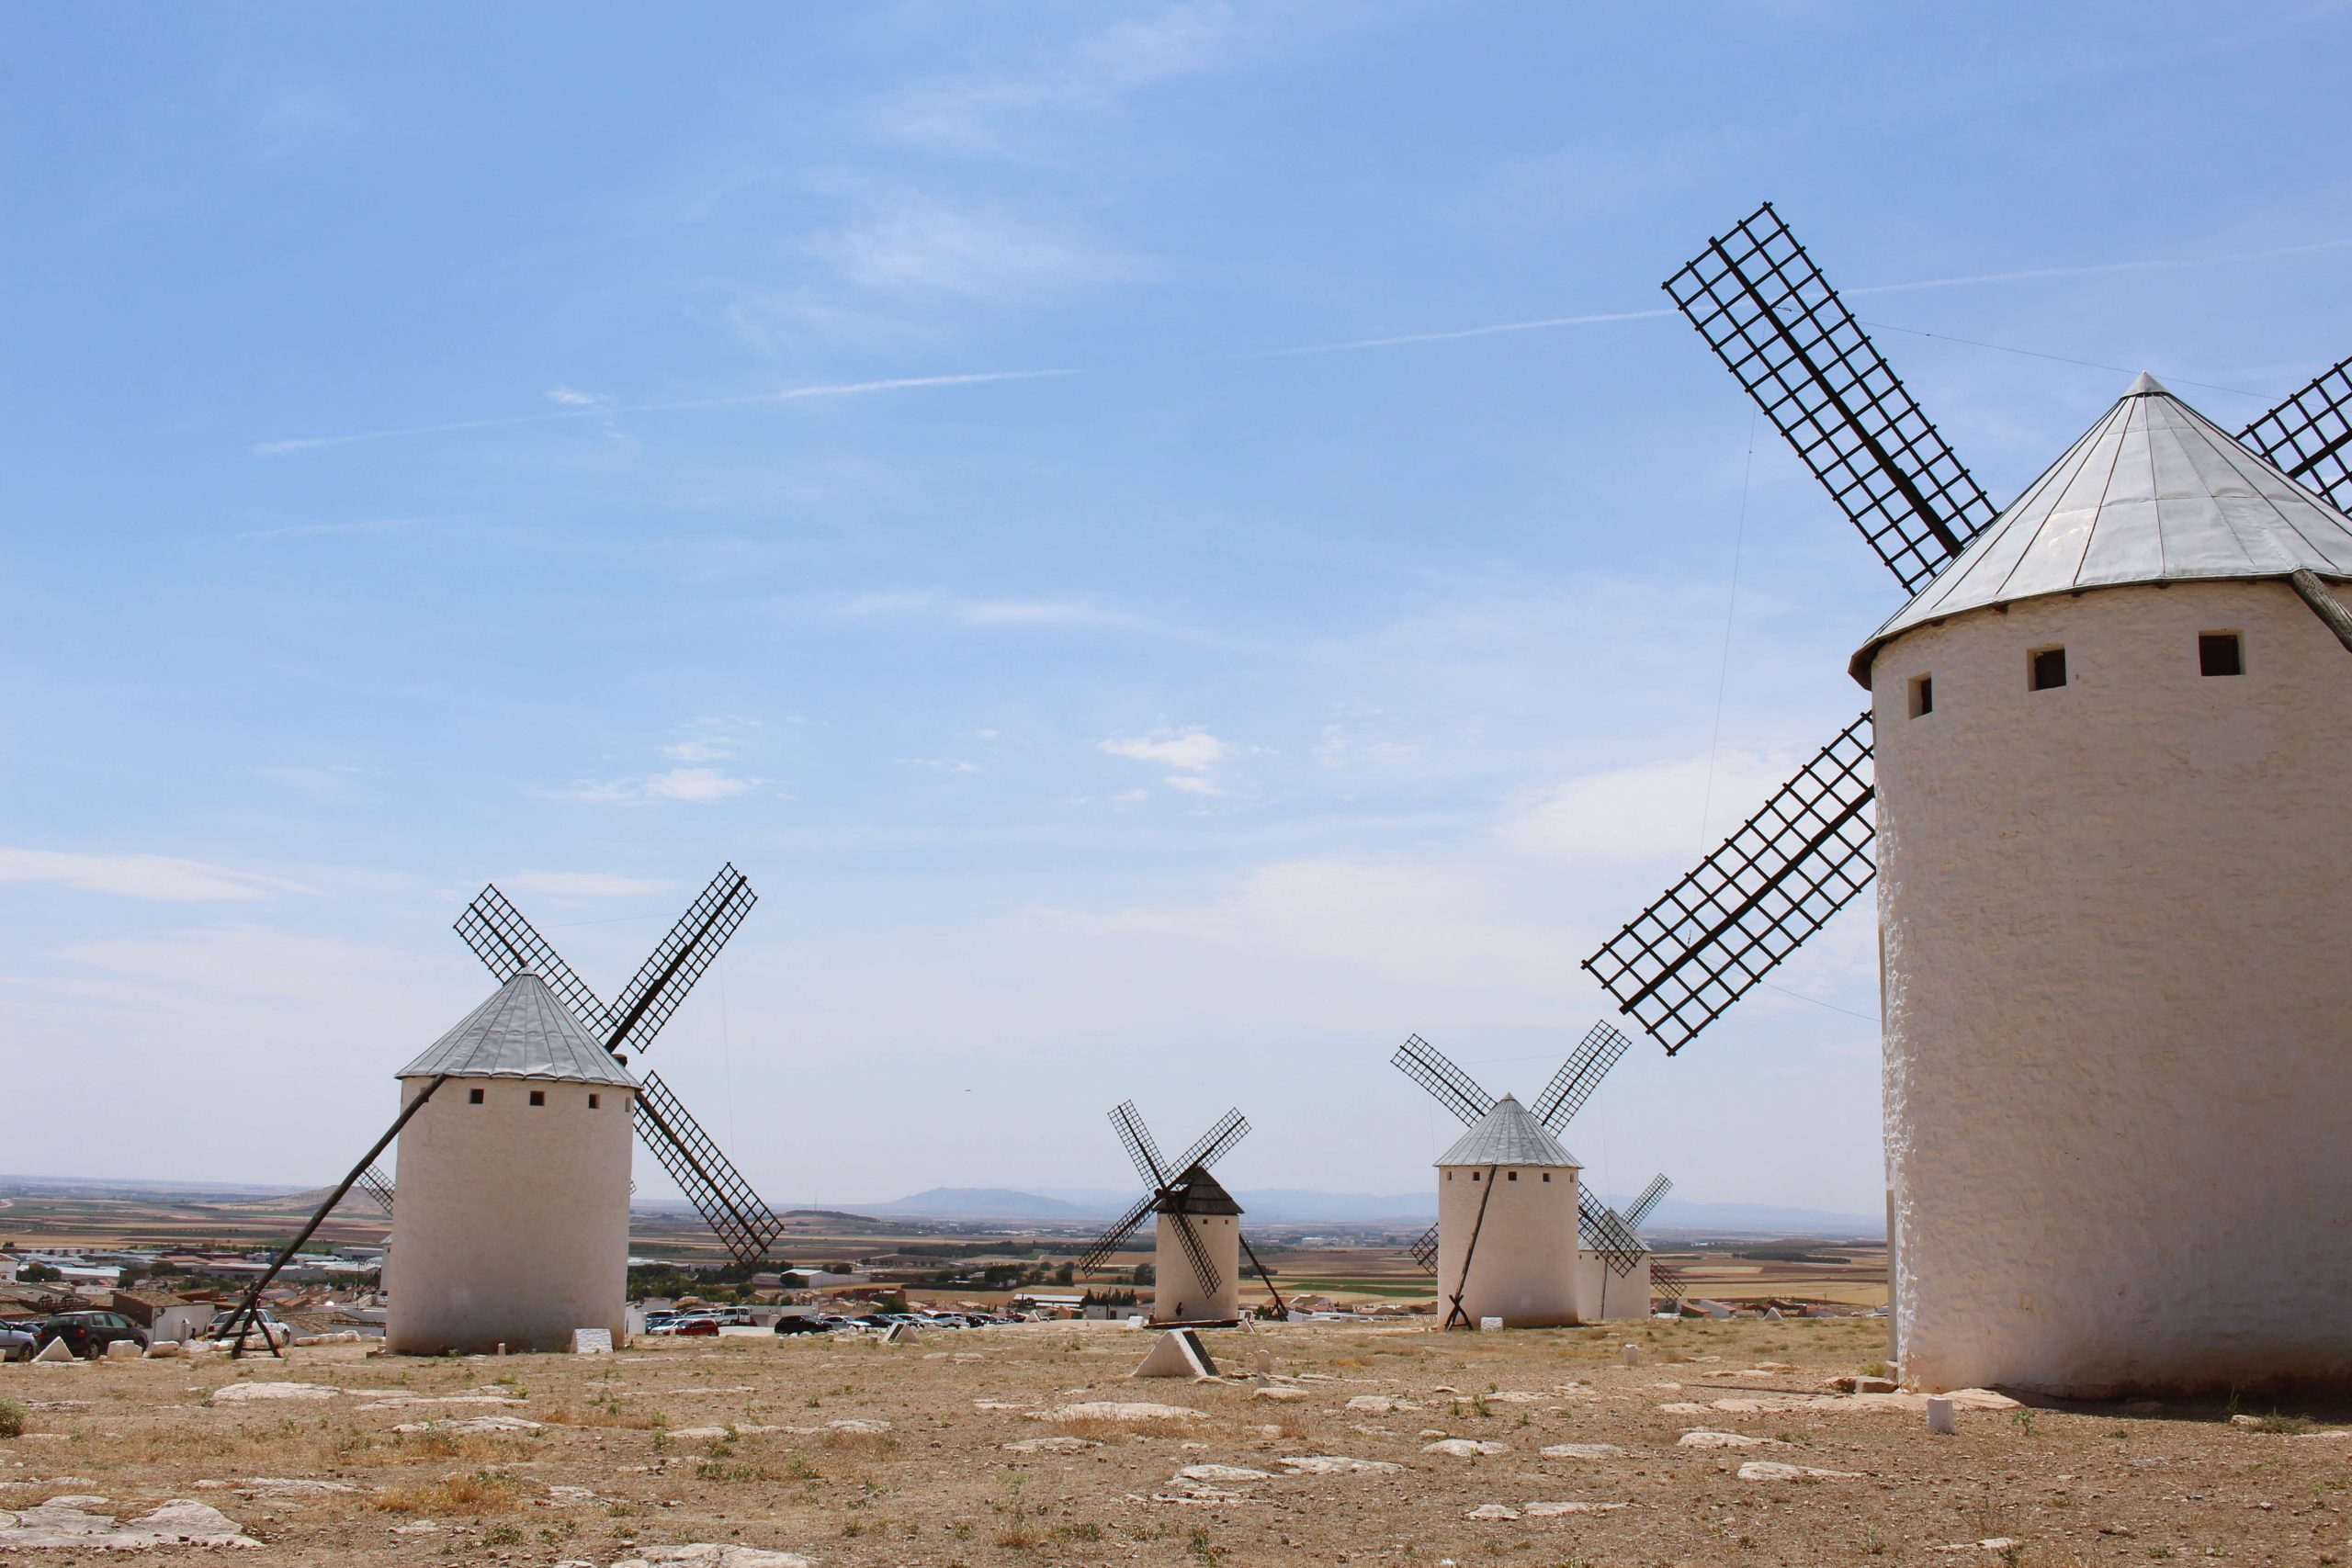 Don quijote mills in Castile-La Mancha, Spain